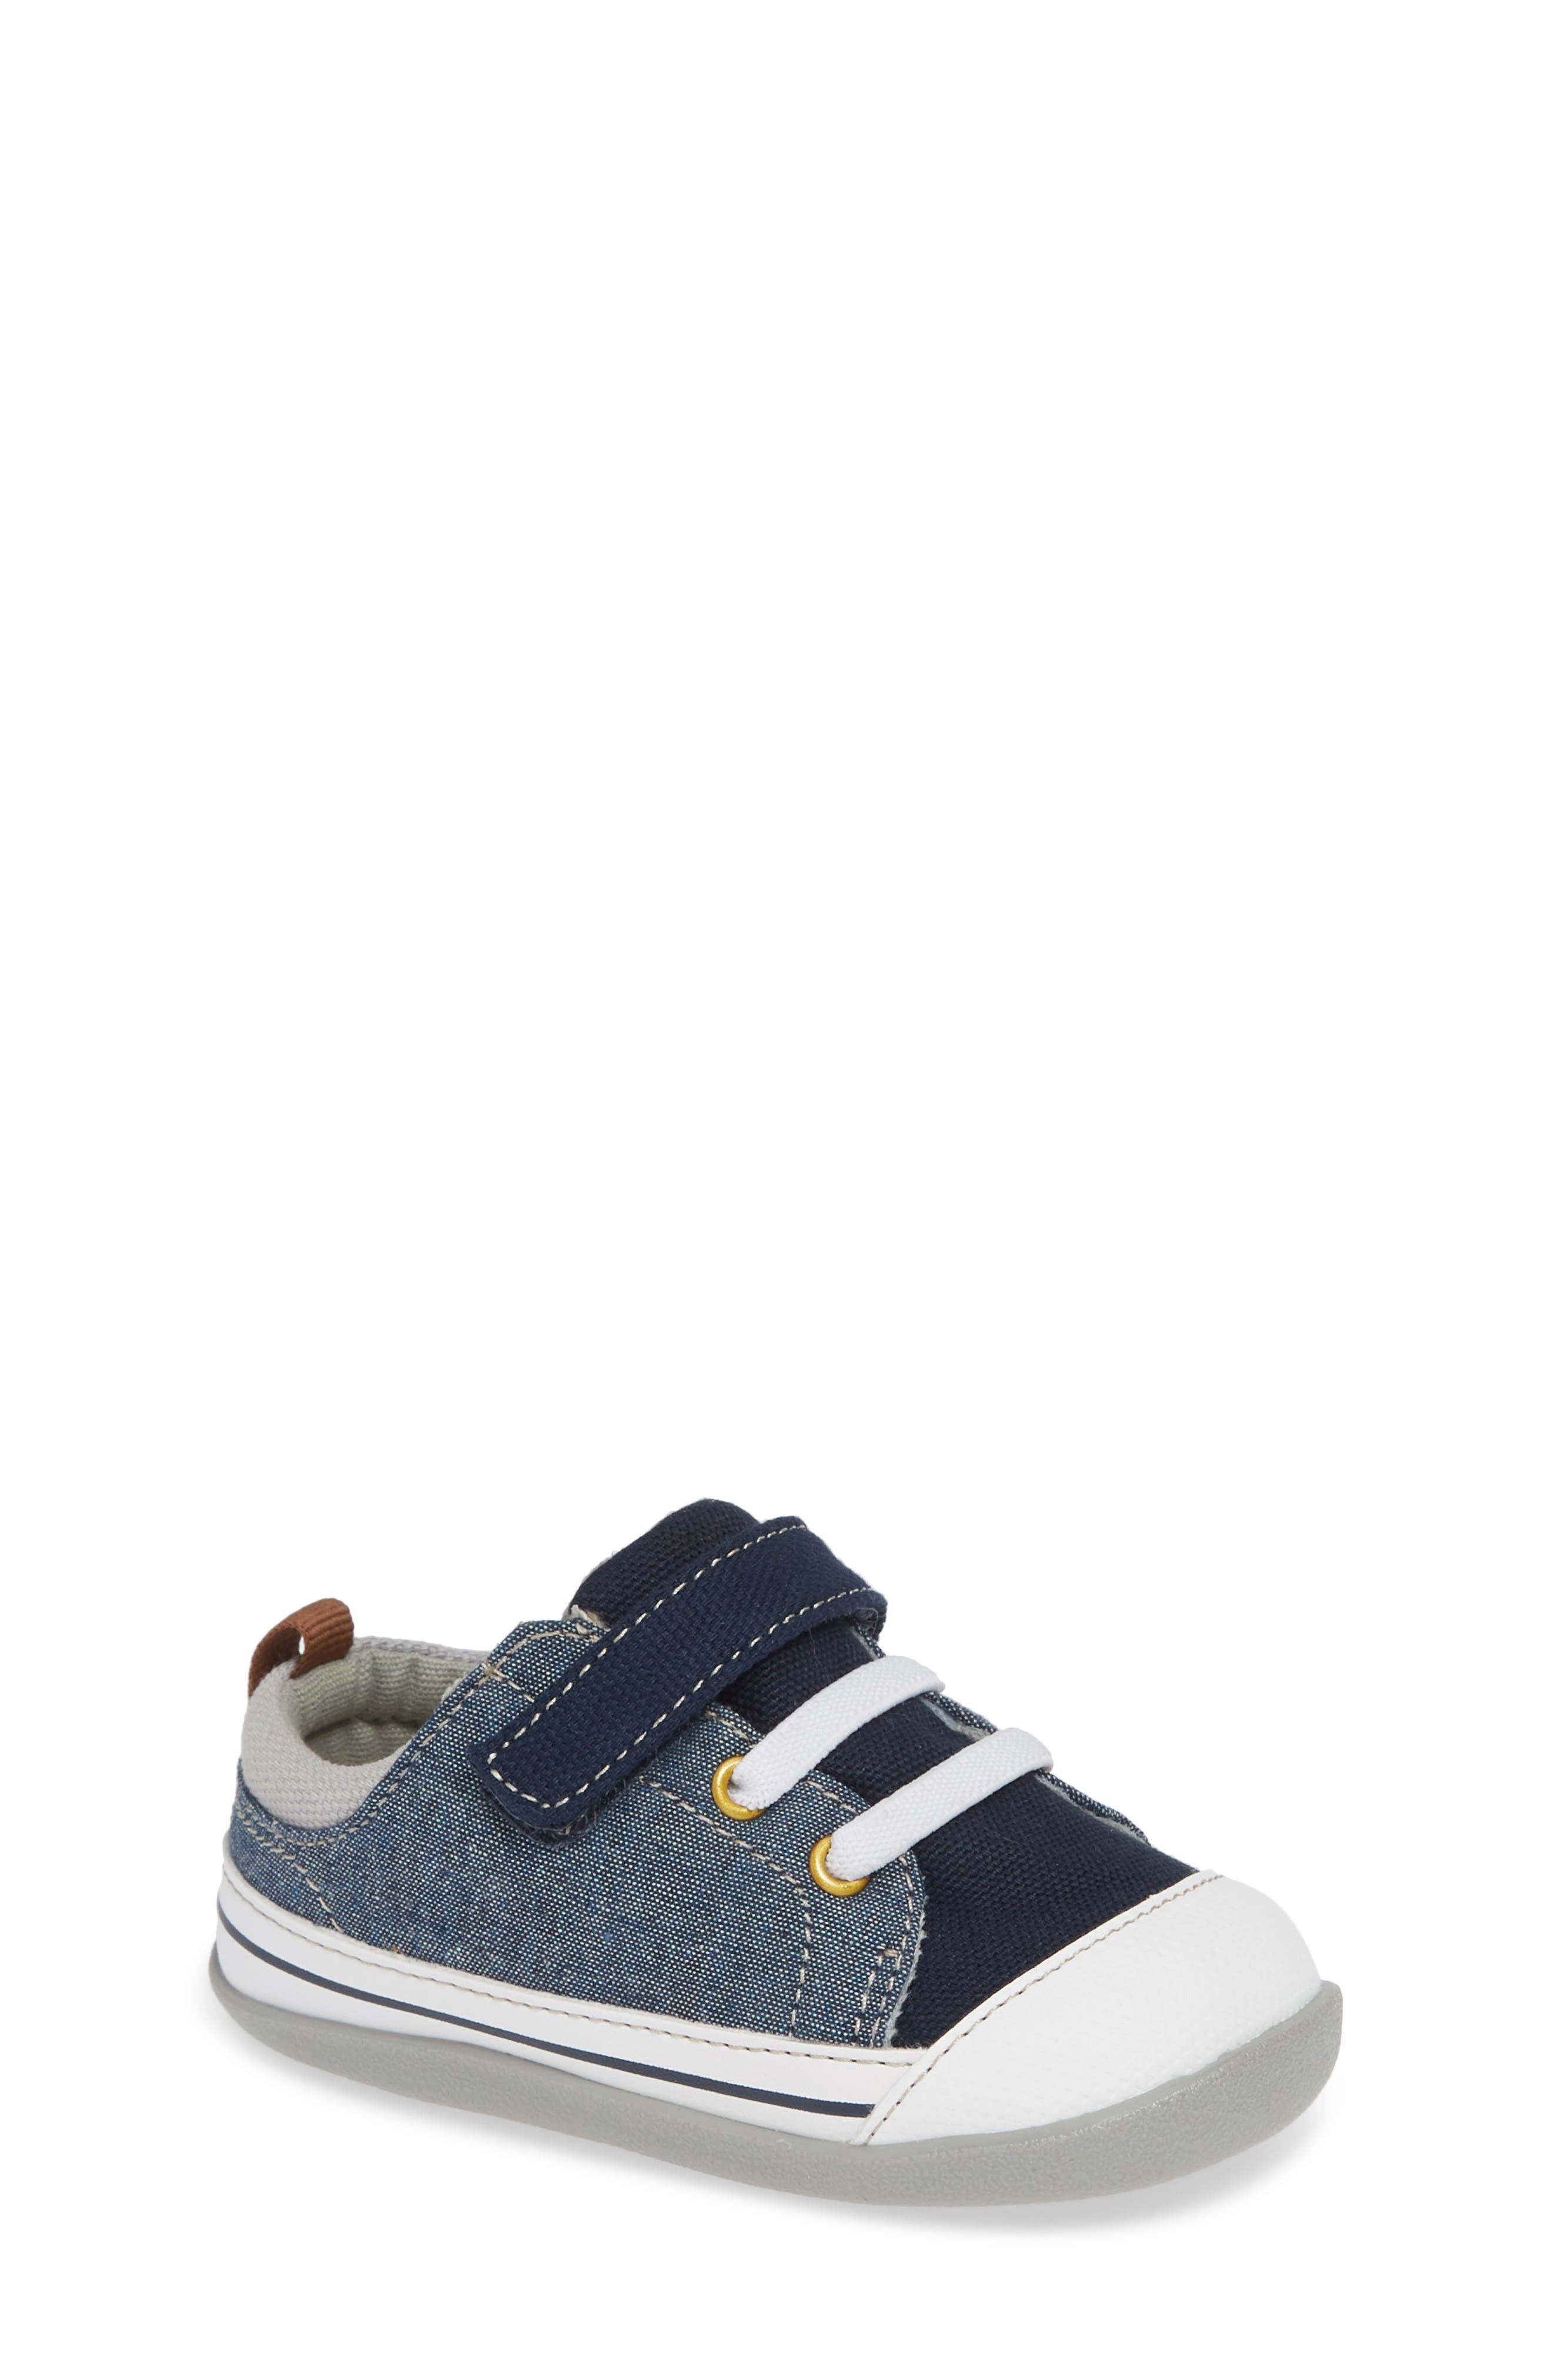 Stevie II Sneaker,                         Main,                         color, BLUE DENIM